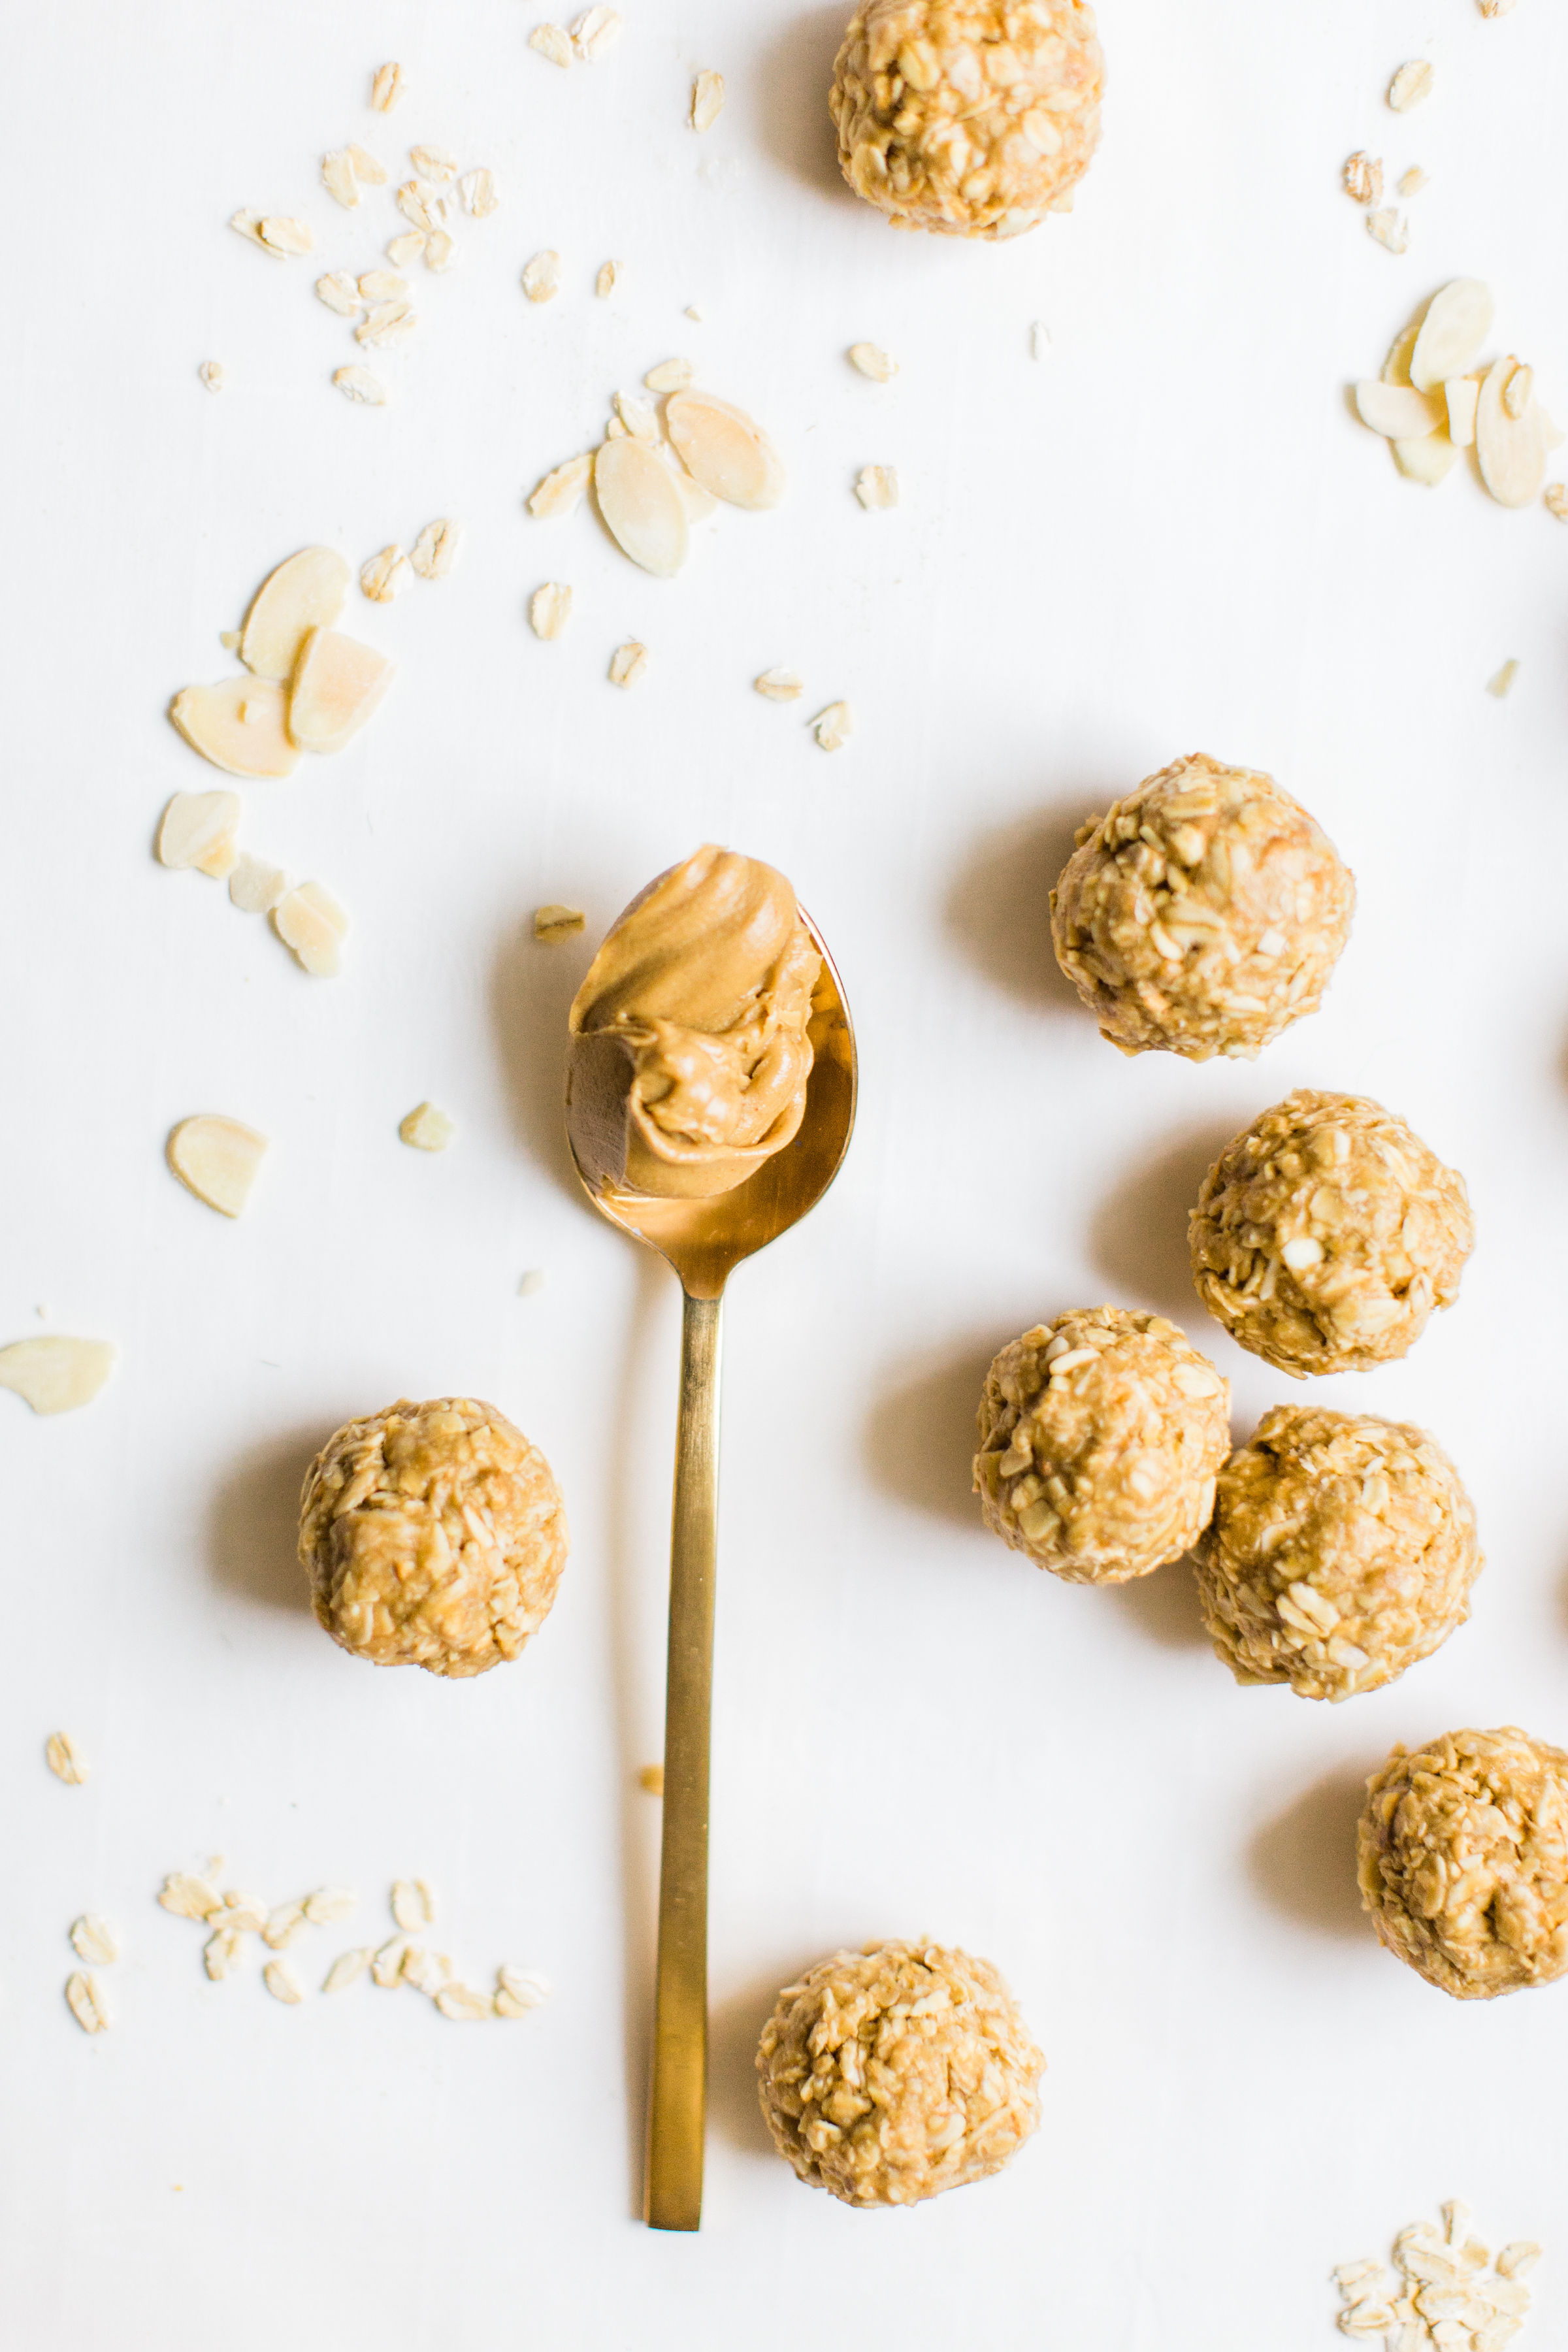 These no-bake energy bites are easy to make, the perfect combination of sweet and salty, have plenty of added protein thanks to the peanut butter, and kids absolutely love them because they're basically delicious no-bake cookies! Click through for the recipe. #snack #energybites #nobake #nobakecookies #healthysnack #kidsrecipe #kidssnack | glitterinc.com | @glitterinc